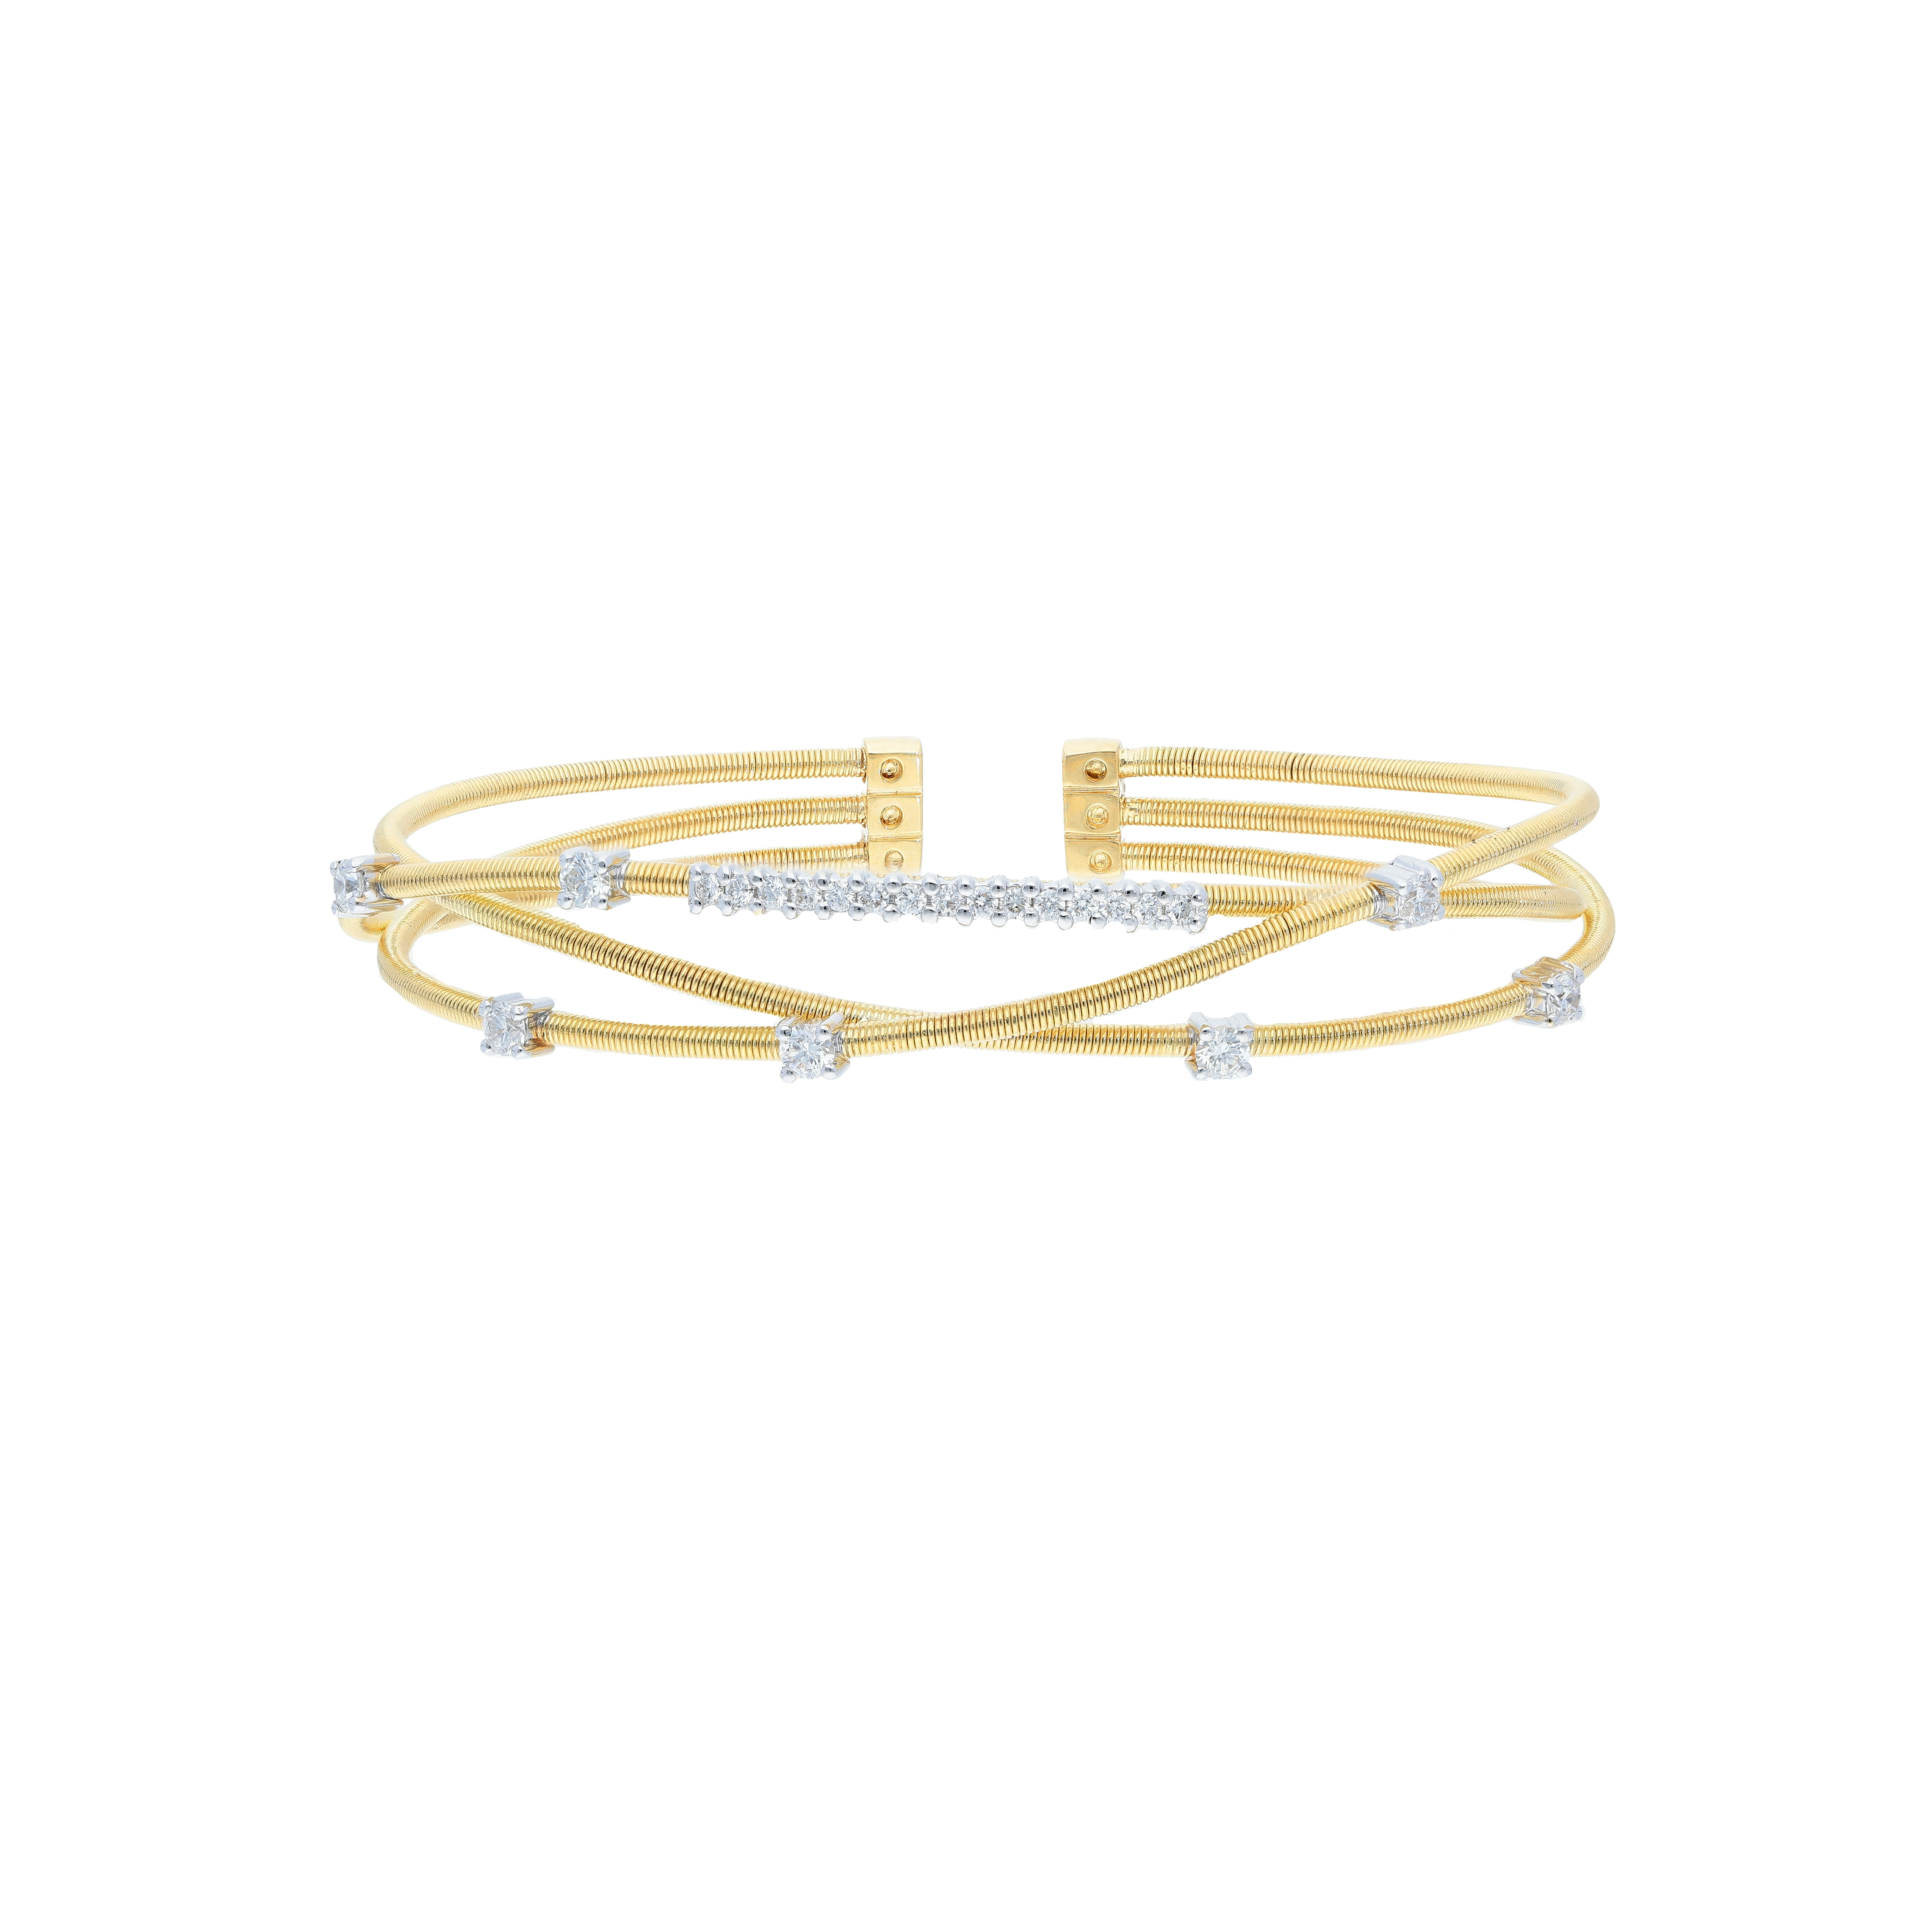 Italian cuff bracelet in 18 kt two tone yellow and white gold with diamonds